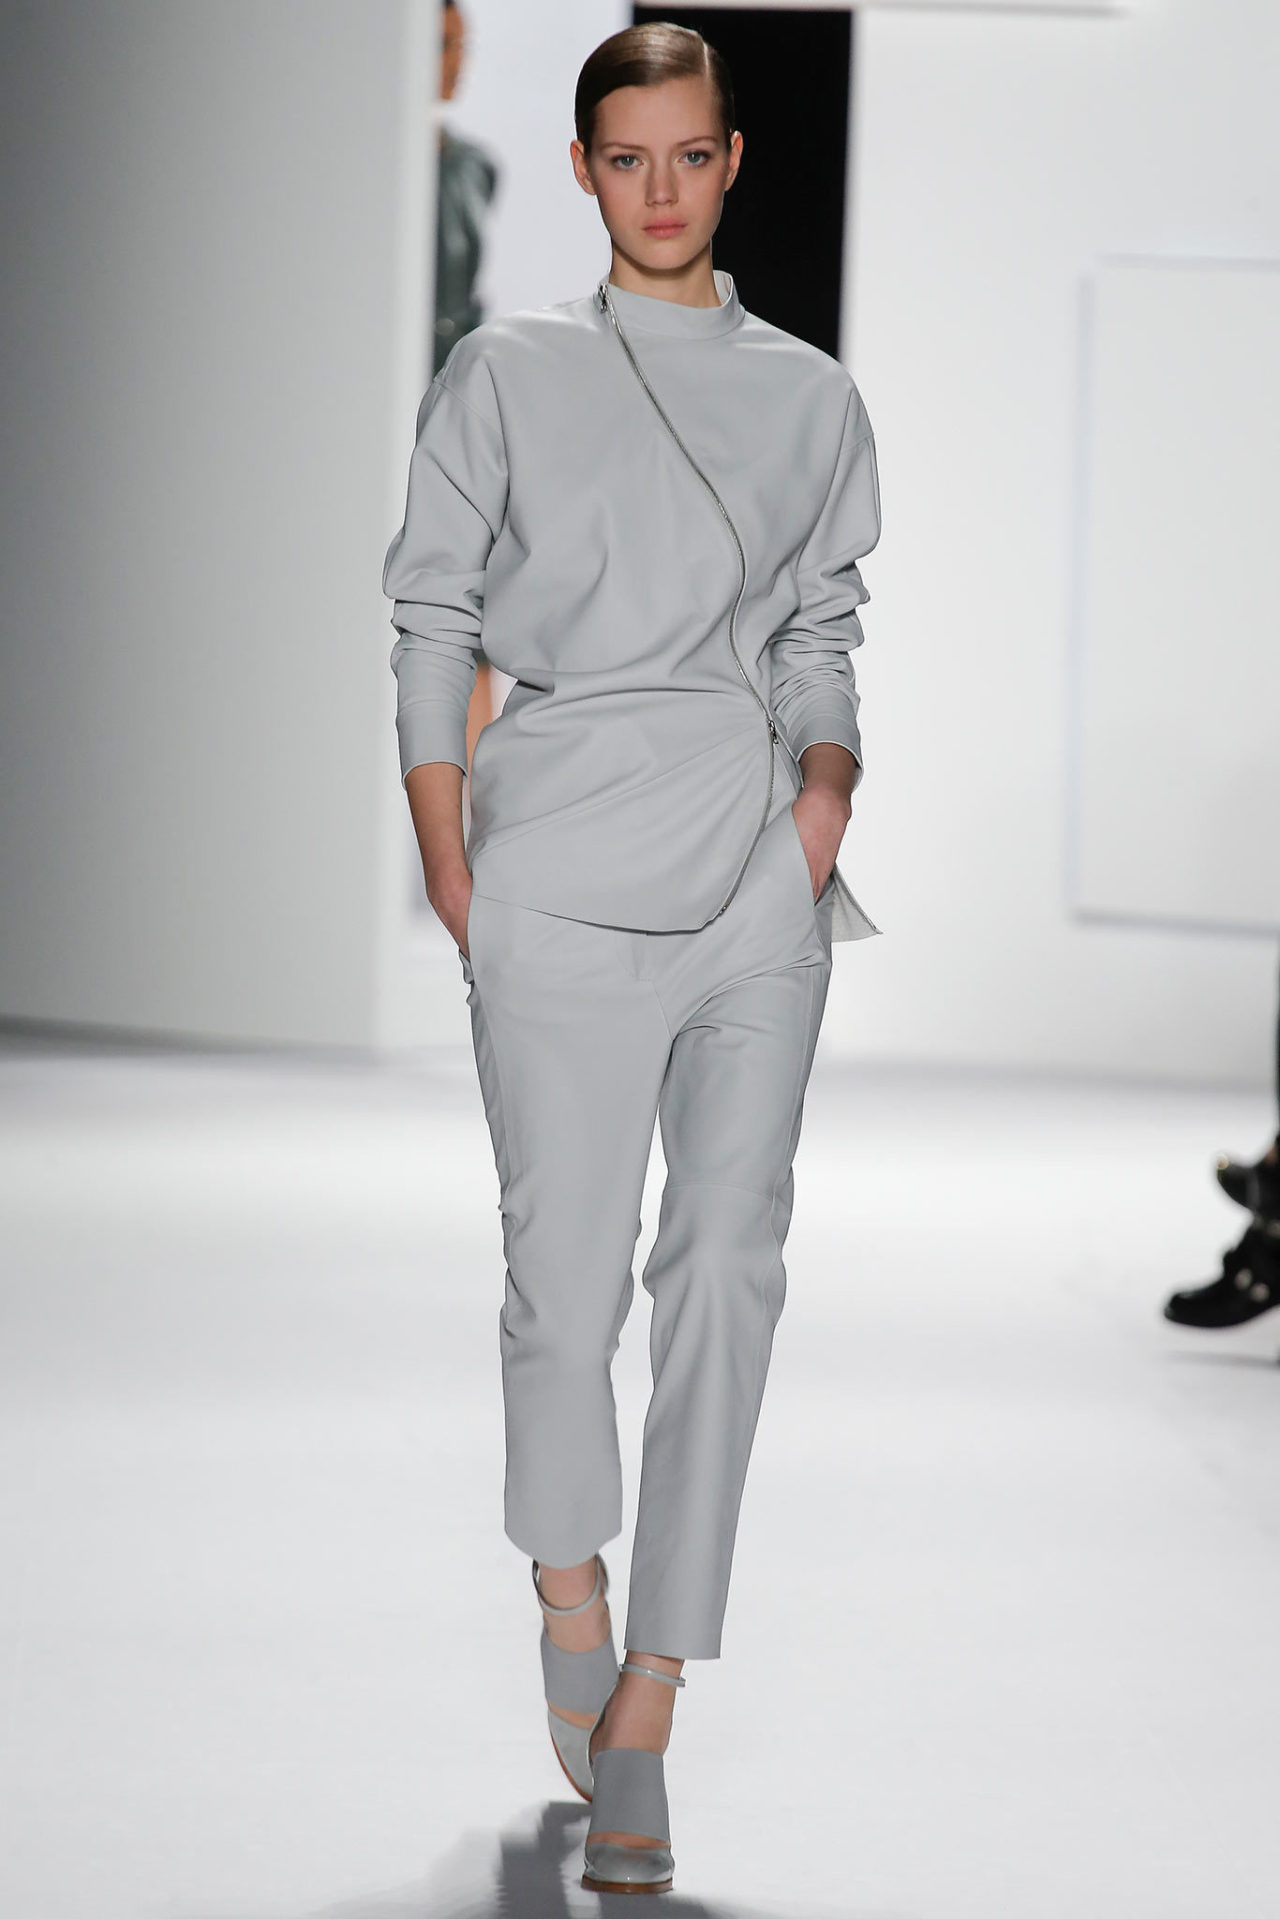 Lacoste Otoño/Invierno 2013 Semana de la Moda de Nueva York ….. Lacoste Autumn/Winter 2013 New York Fashion Week